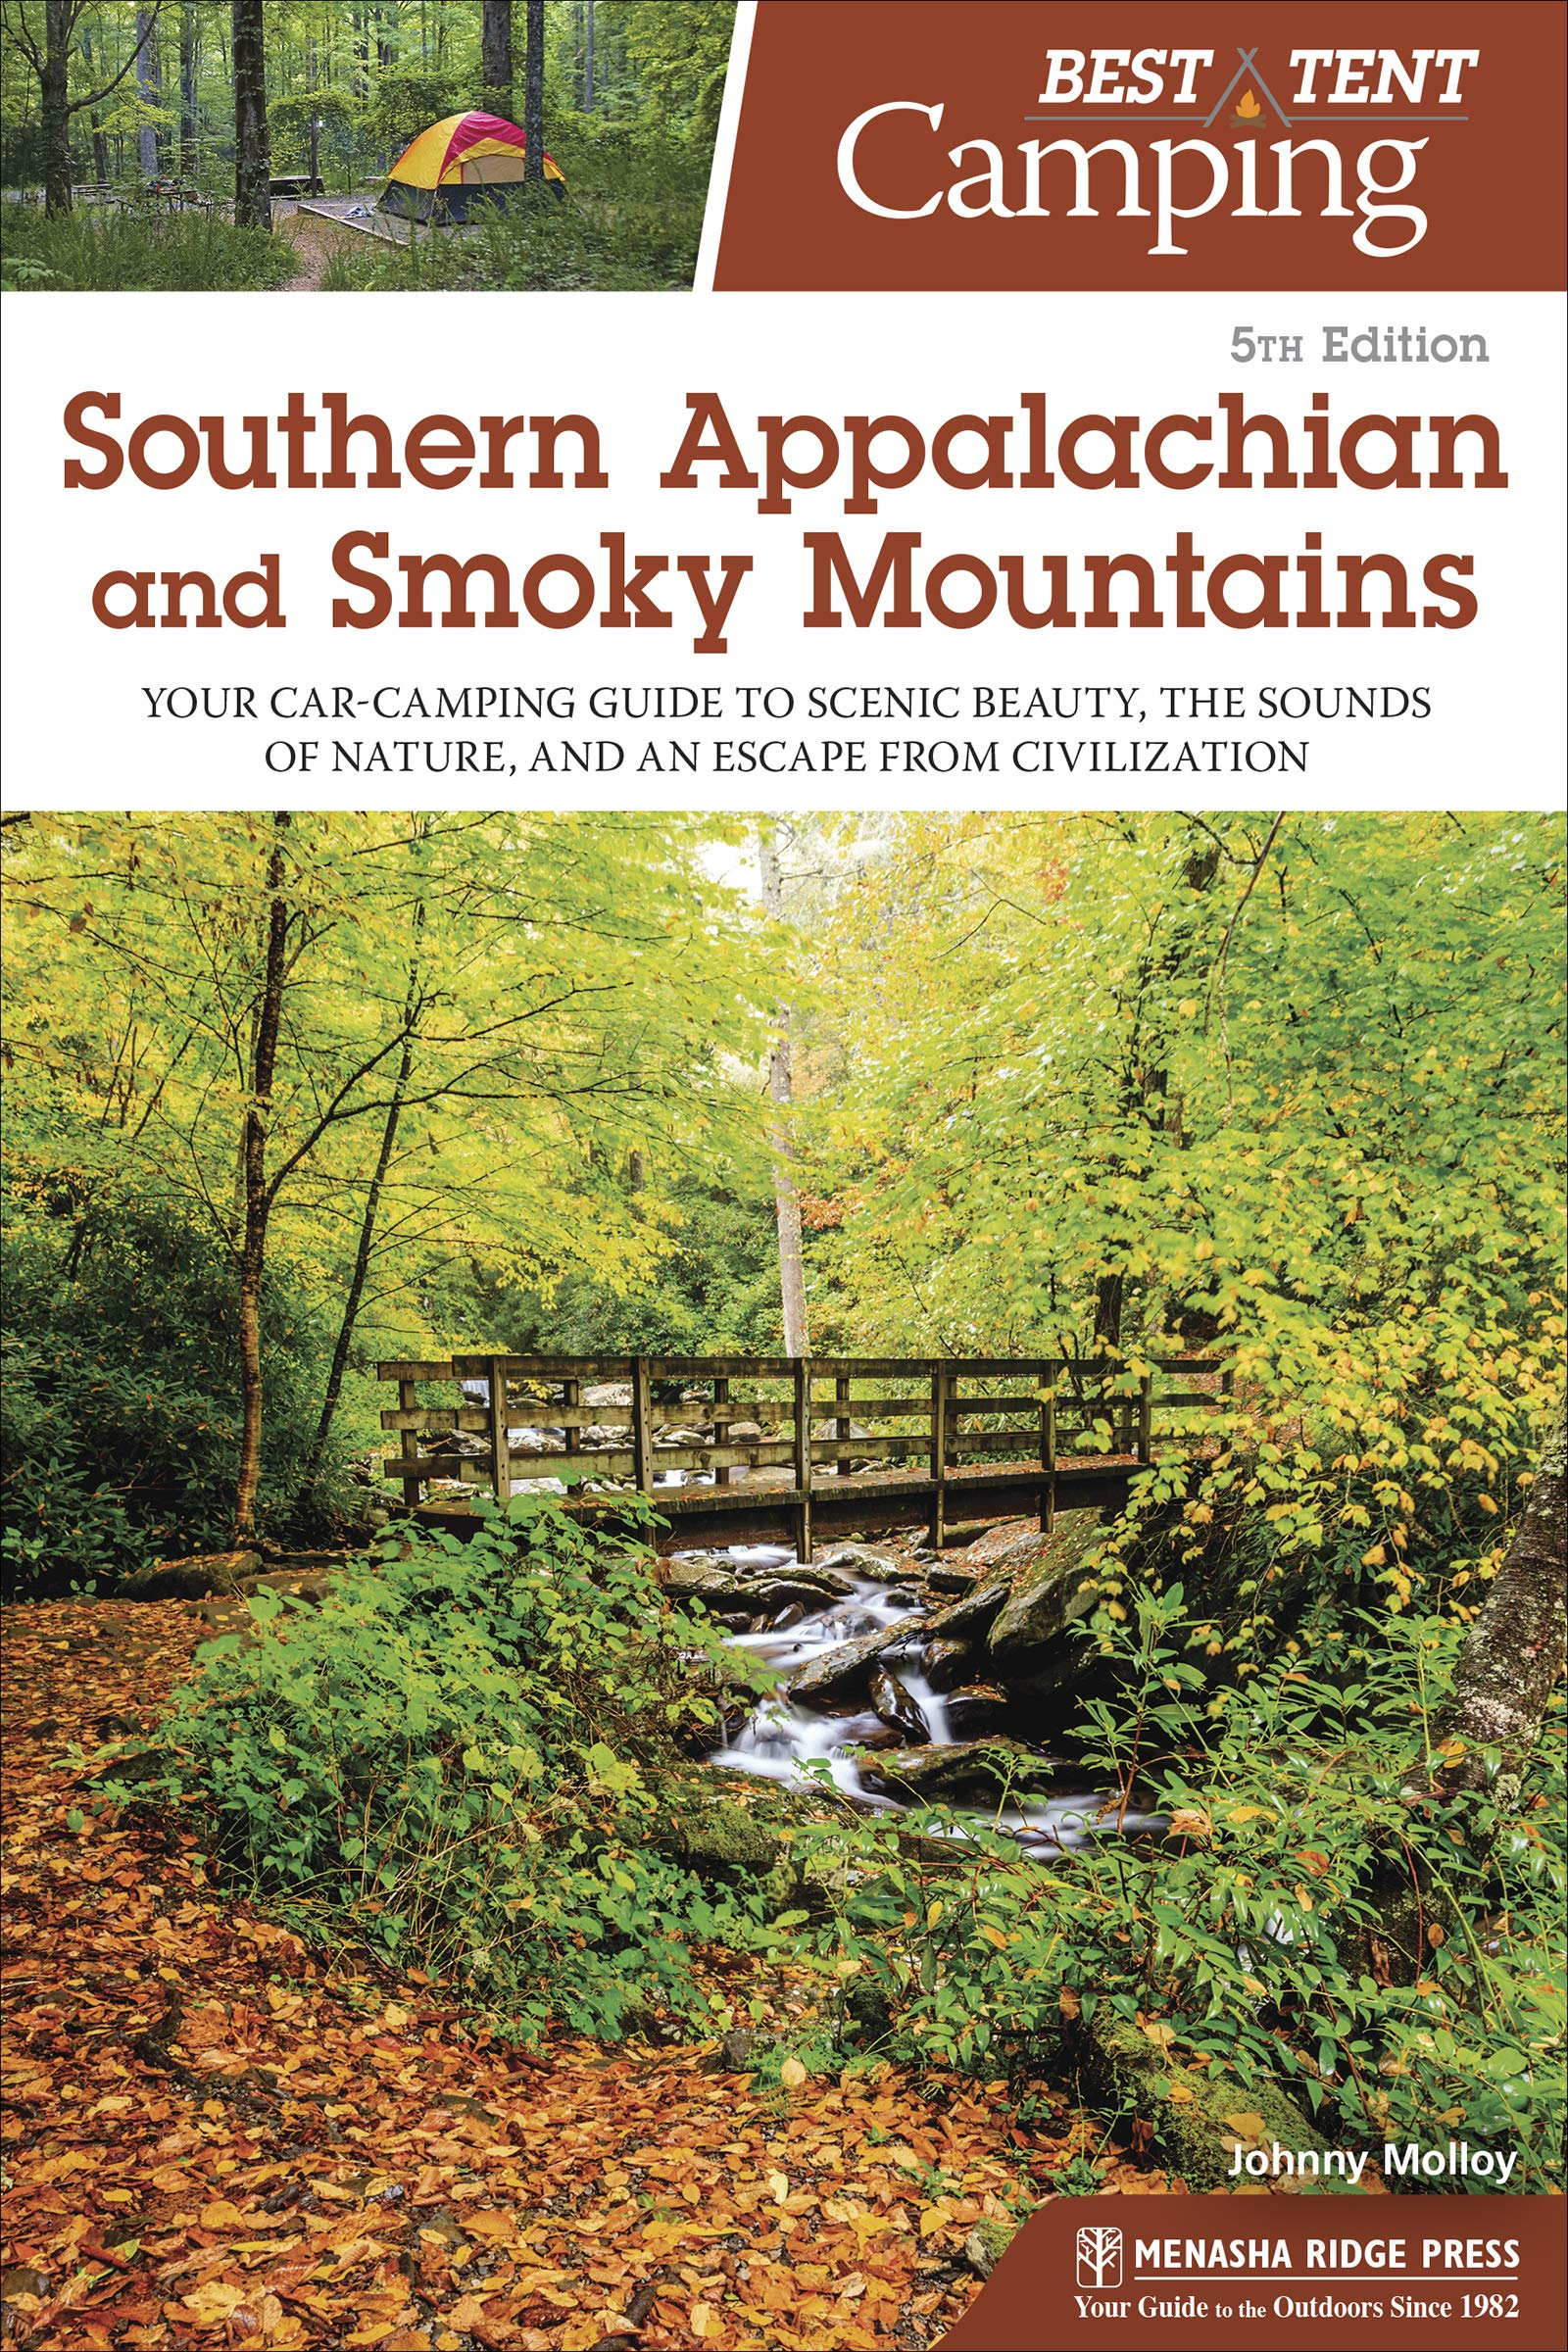 a39948d3909 Best Tent Camping: Southern Appalachian and Smoky Mountains: Your Car- Camping Guide to Scenic Beauty, the Sounds of Nature, and an Escape from  Civilization ...